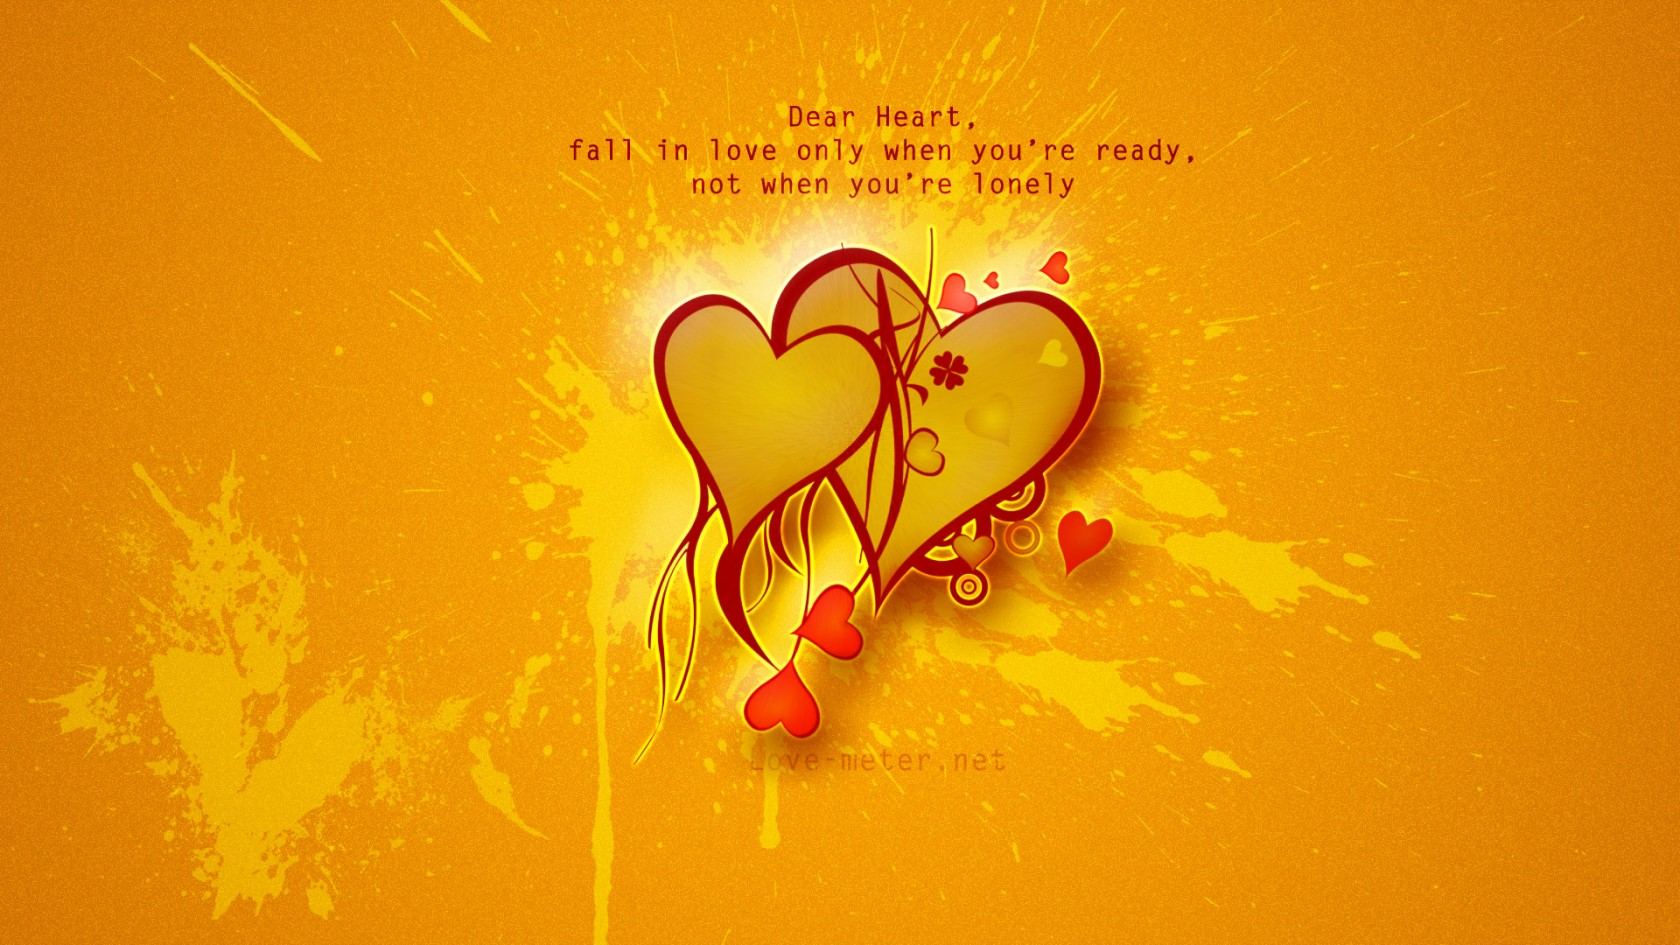 Love Quotes Wallpapers For Desktop QuotesGram 1680x945